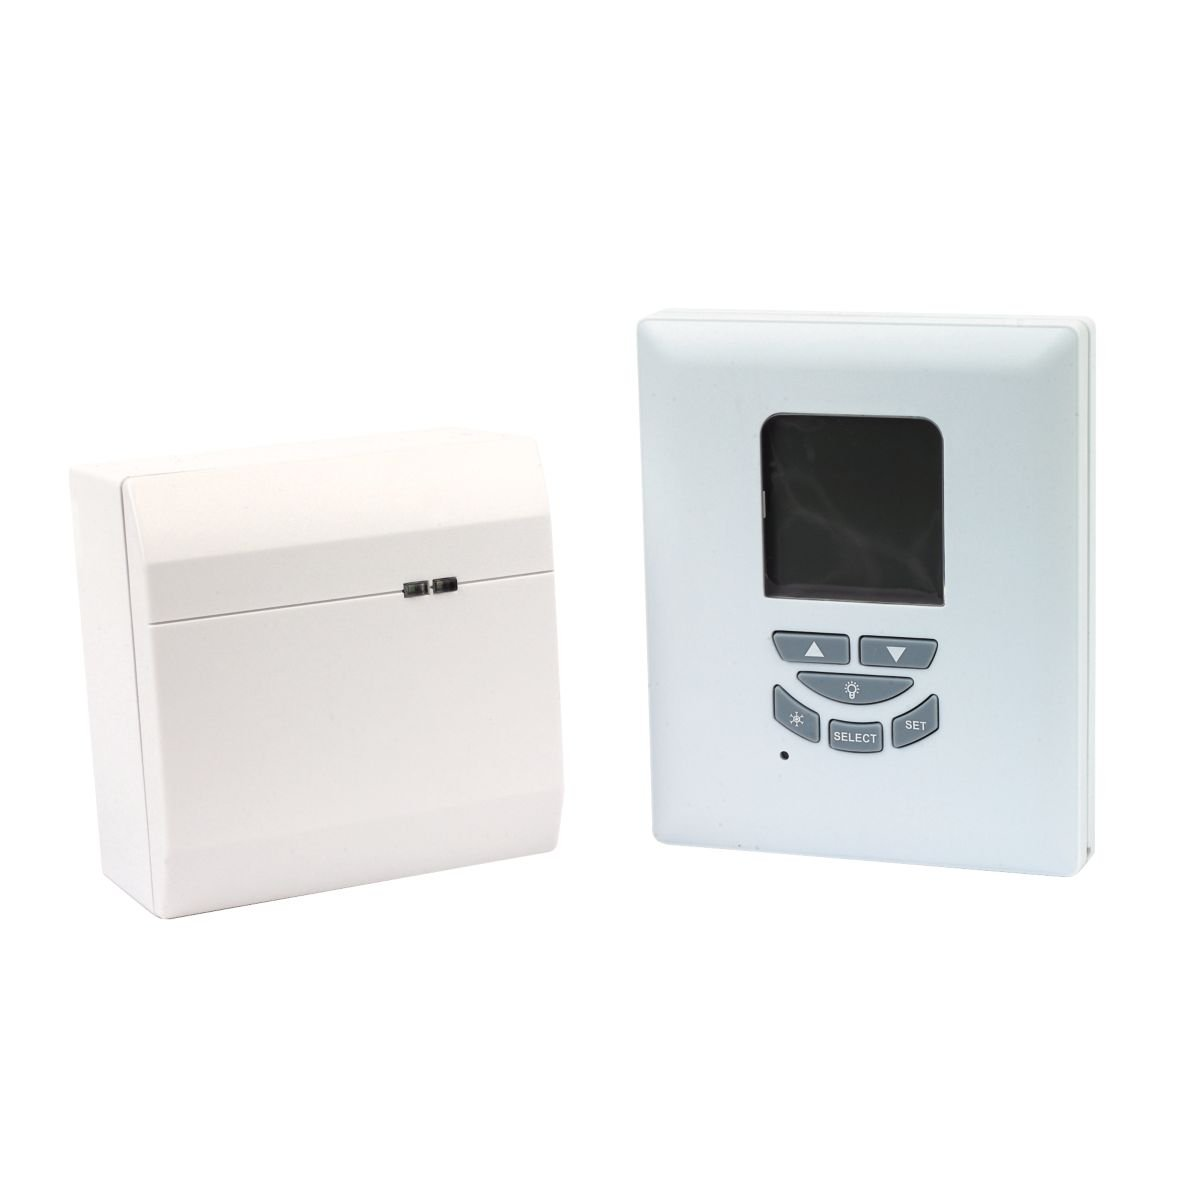 Horstmann Hrfs1 Hrfs 1 Digital Wireless Programmable Room Thermostat Wiring A Rf Central Heating